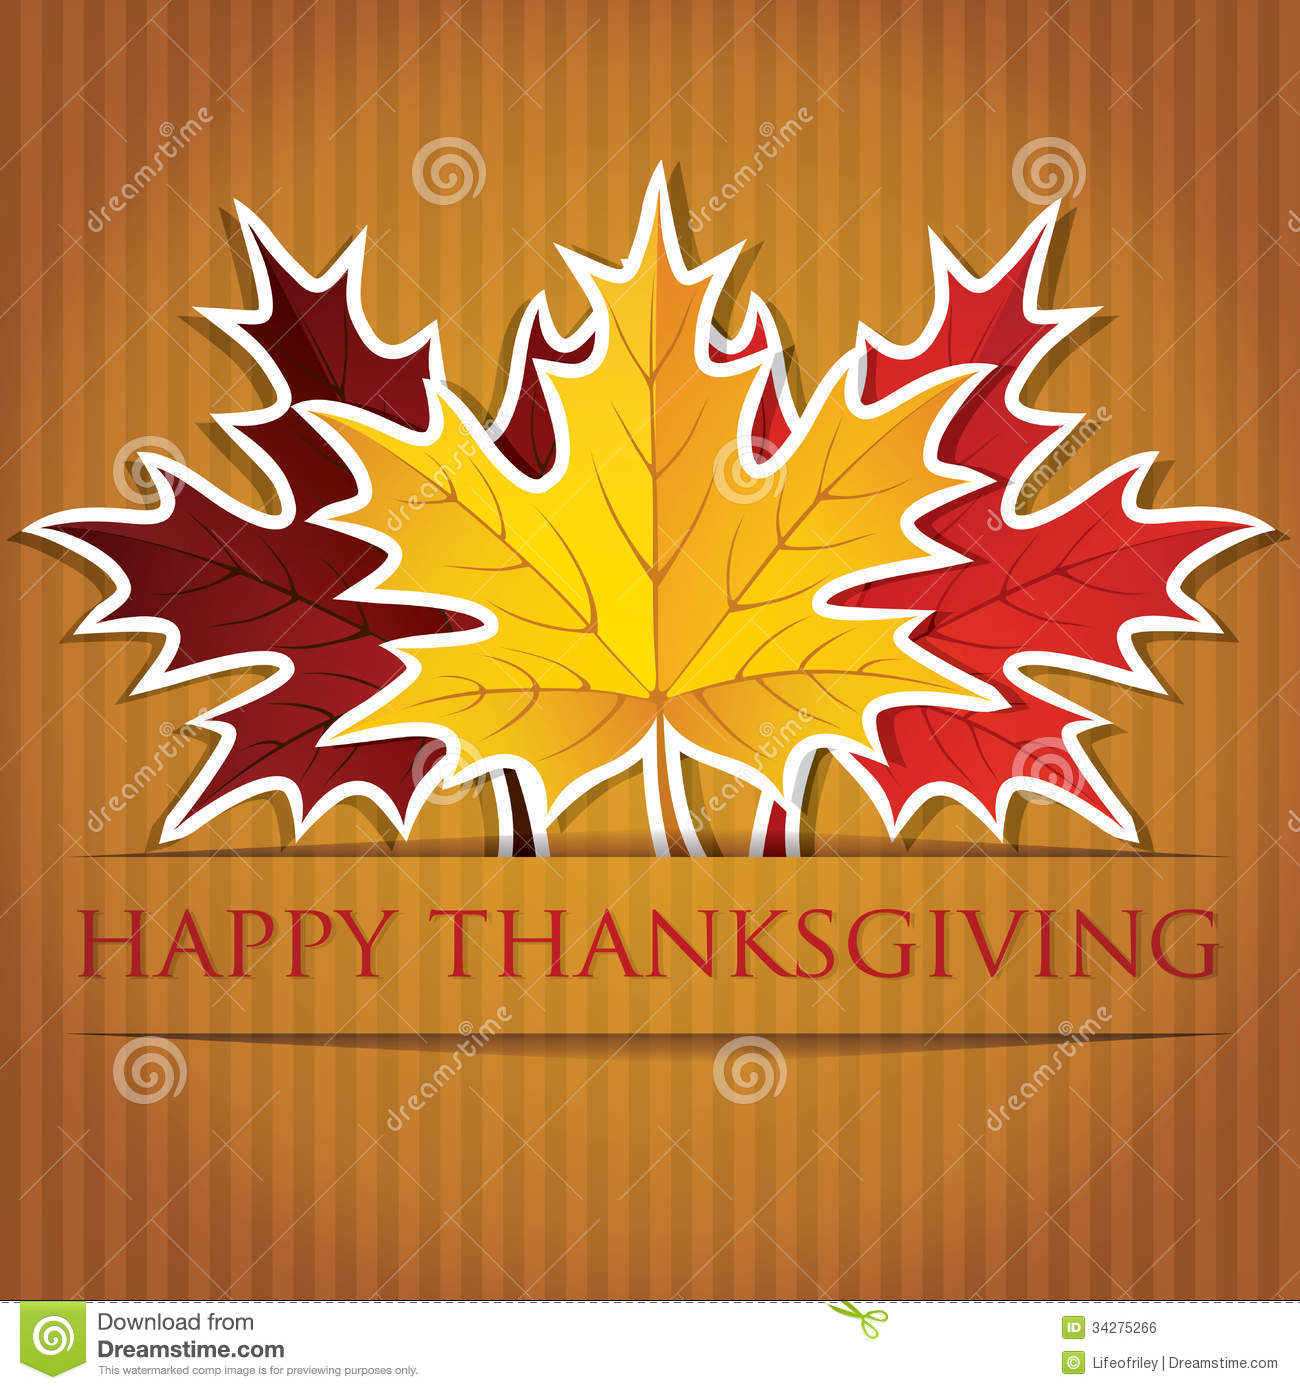 Happy Thanksgiving Royalty Free Stock Image Image 34275266